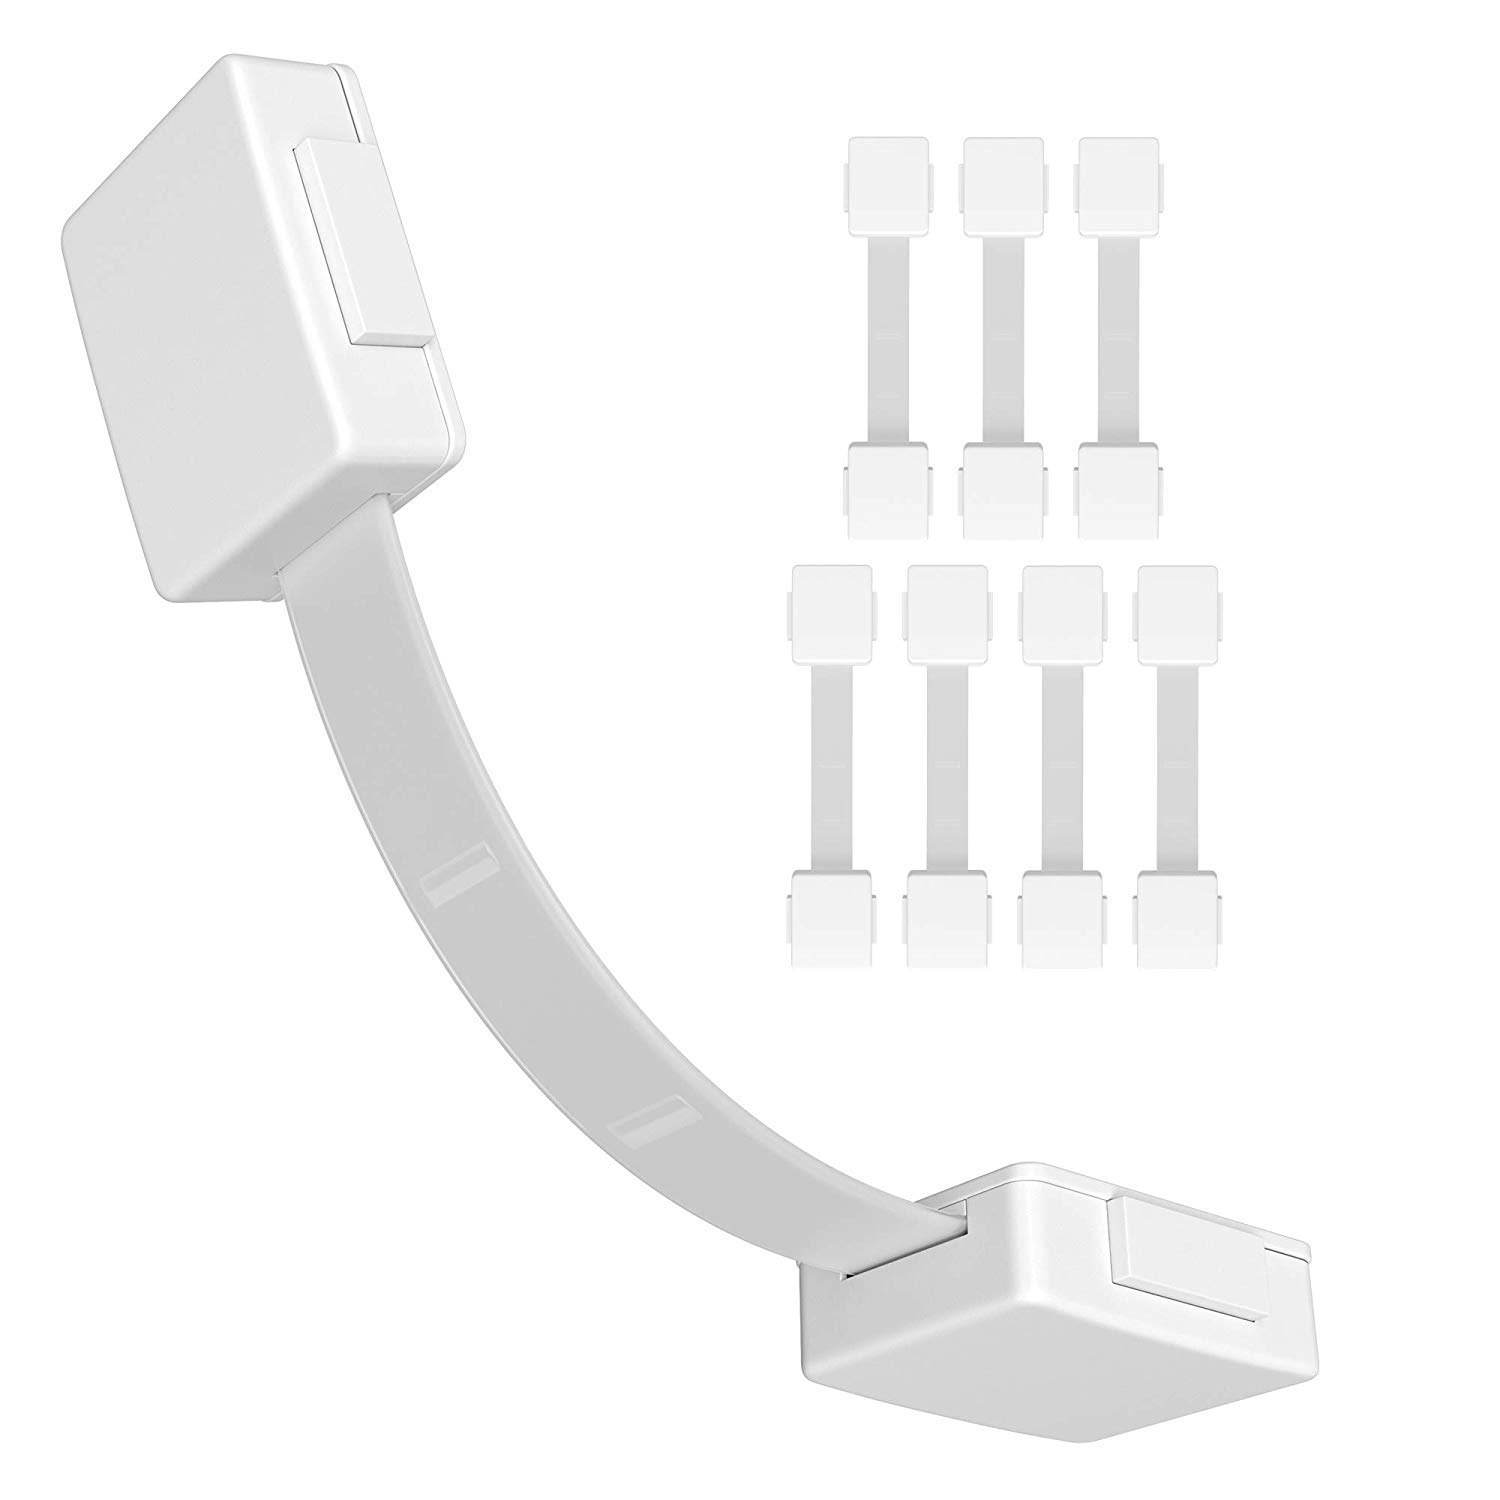 Skyla Homes - Child Safety Locks For Cabinets (8-Pack) - No-Tool Baby Proofing, Extra Strong 3M, Multi-Purpose Lock, Baby proof Home Drawer, Cabinet, Fridge, Oven, Toilet Seat by Skyla Homes